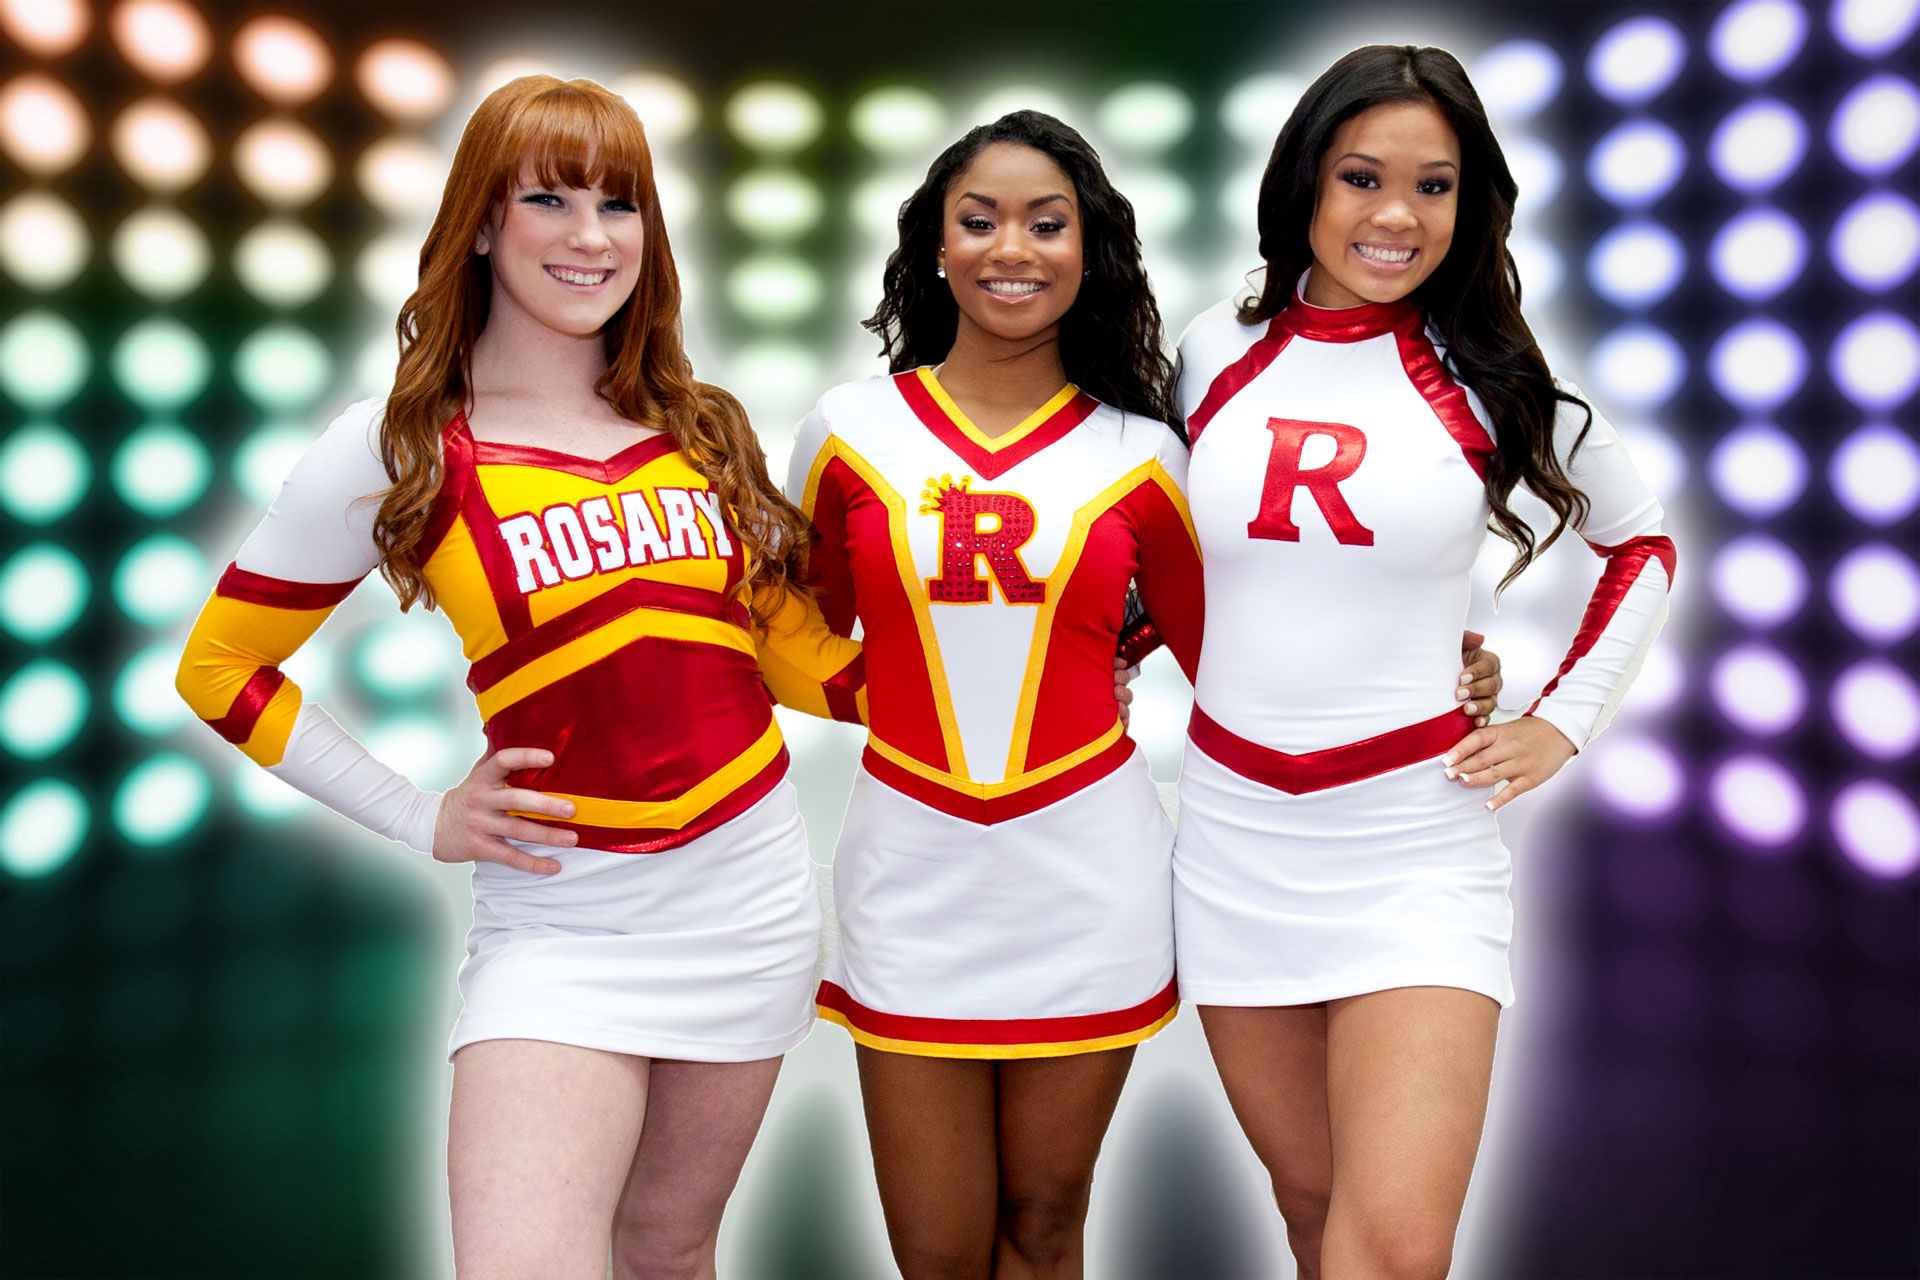 One Piece Cheerleading Uniforms http://www.impact-apparel.com/portfolio-items/cheer-uniforms-15/